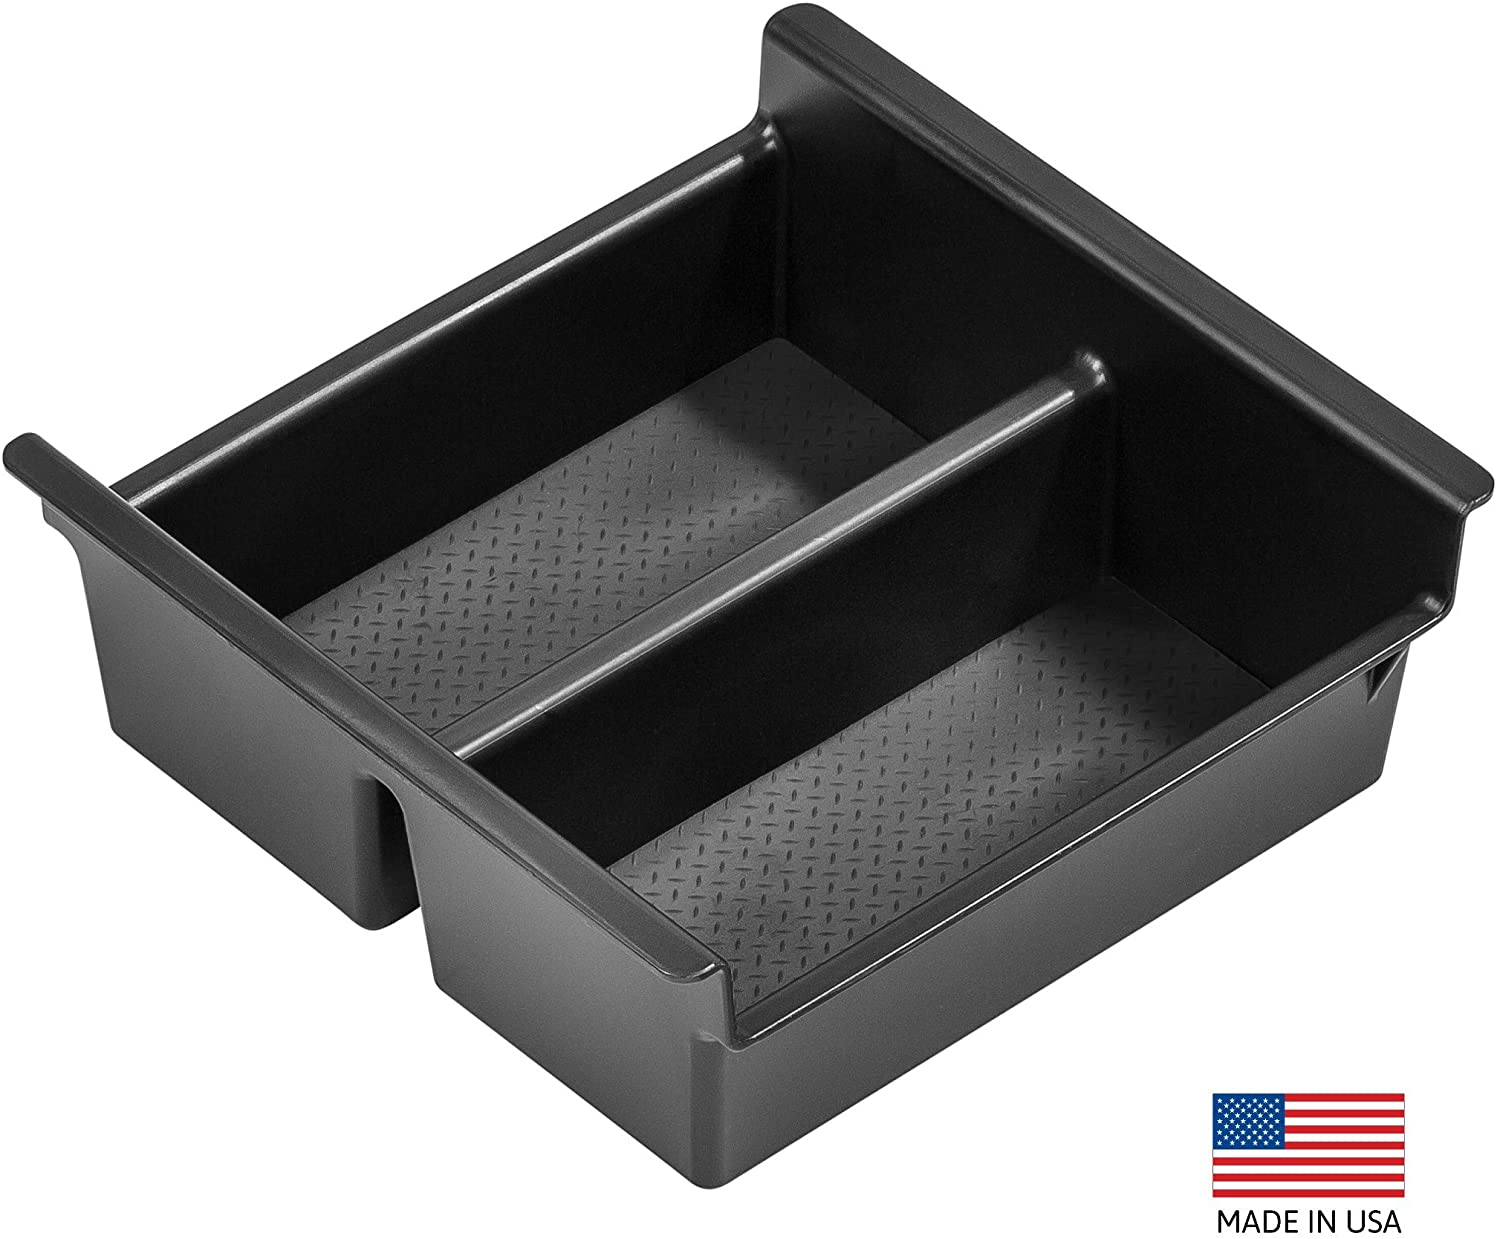 Vehicle OCD 4Runner Center Console Organizer Tray (2010-2021) - Ships Free